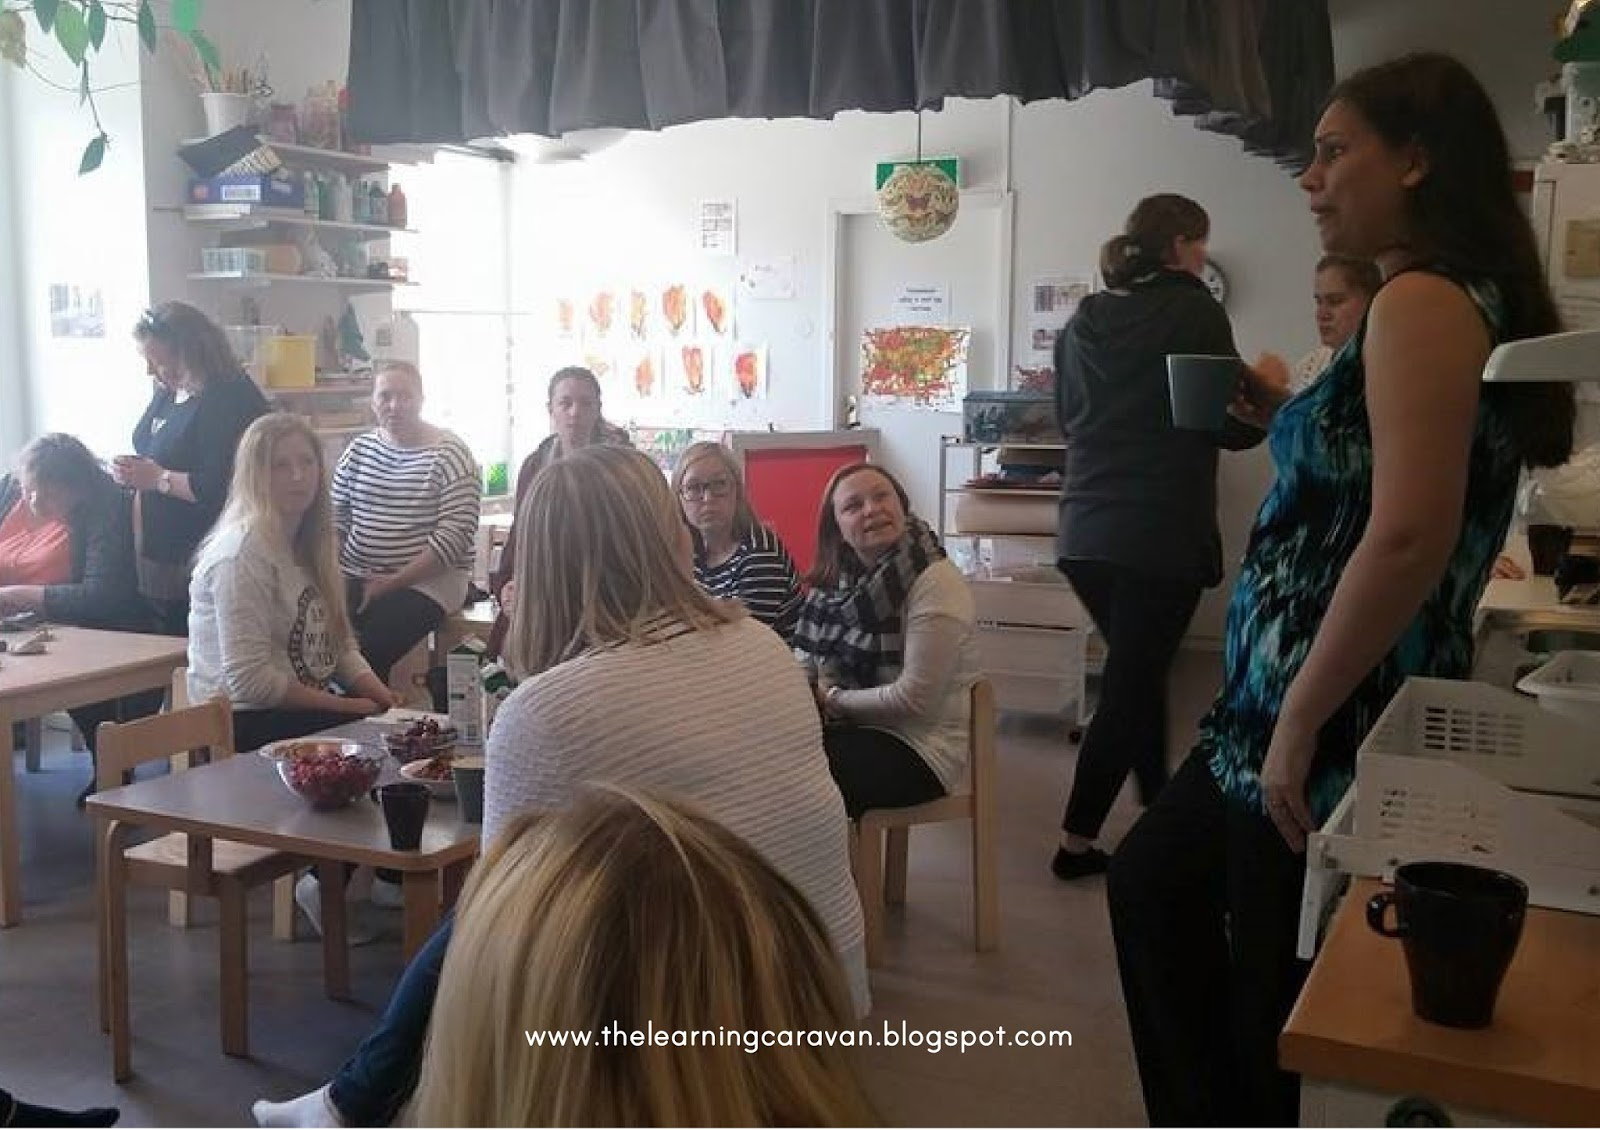 reggio emilia approach analysis The reggio emilia approach will be covered in greater detail than the high/scope approach and the montessori method for a number of reasons first, familiarity with the reggio emilia approach is integral to recent developments in early childhood theory and practice.